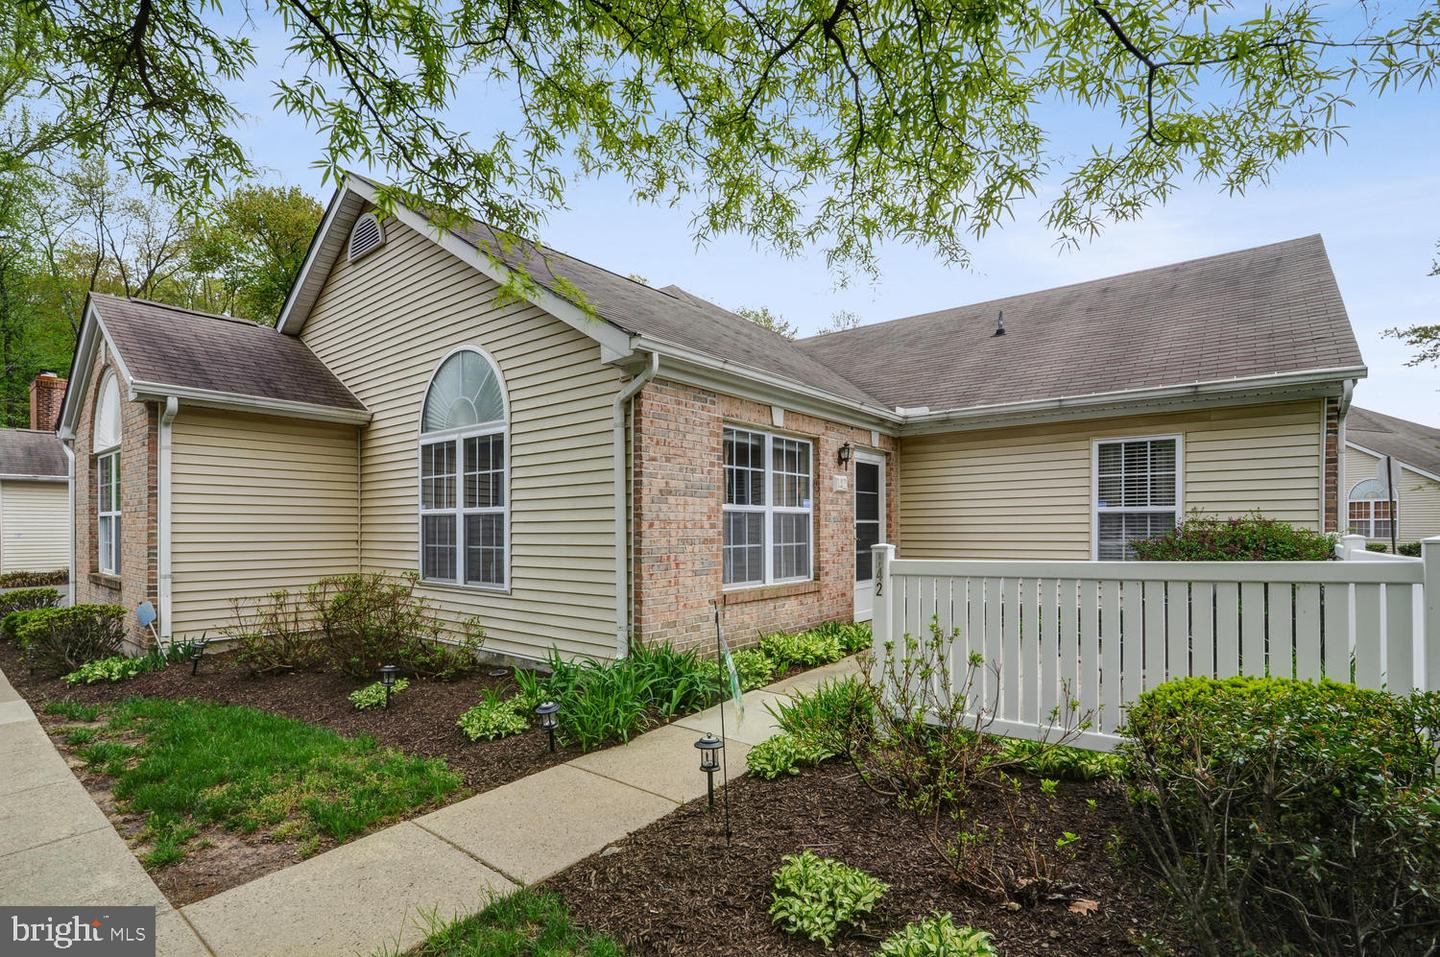 142 POINT CT, LAWRENCE, NJ 08648